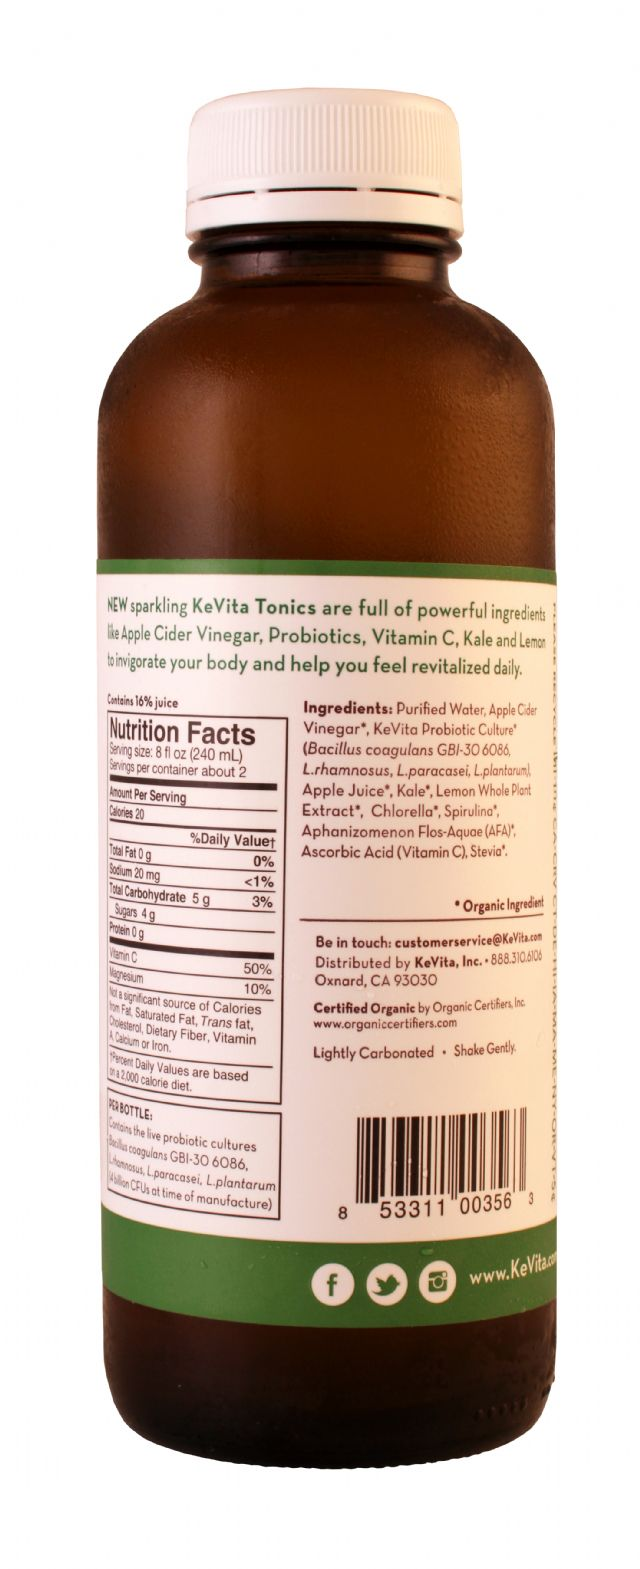 KeVita Tonics: KevitaTonics KaleLemon Facts